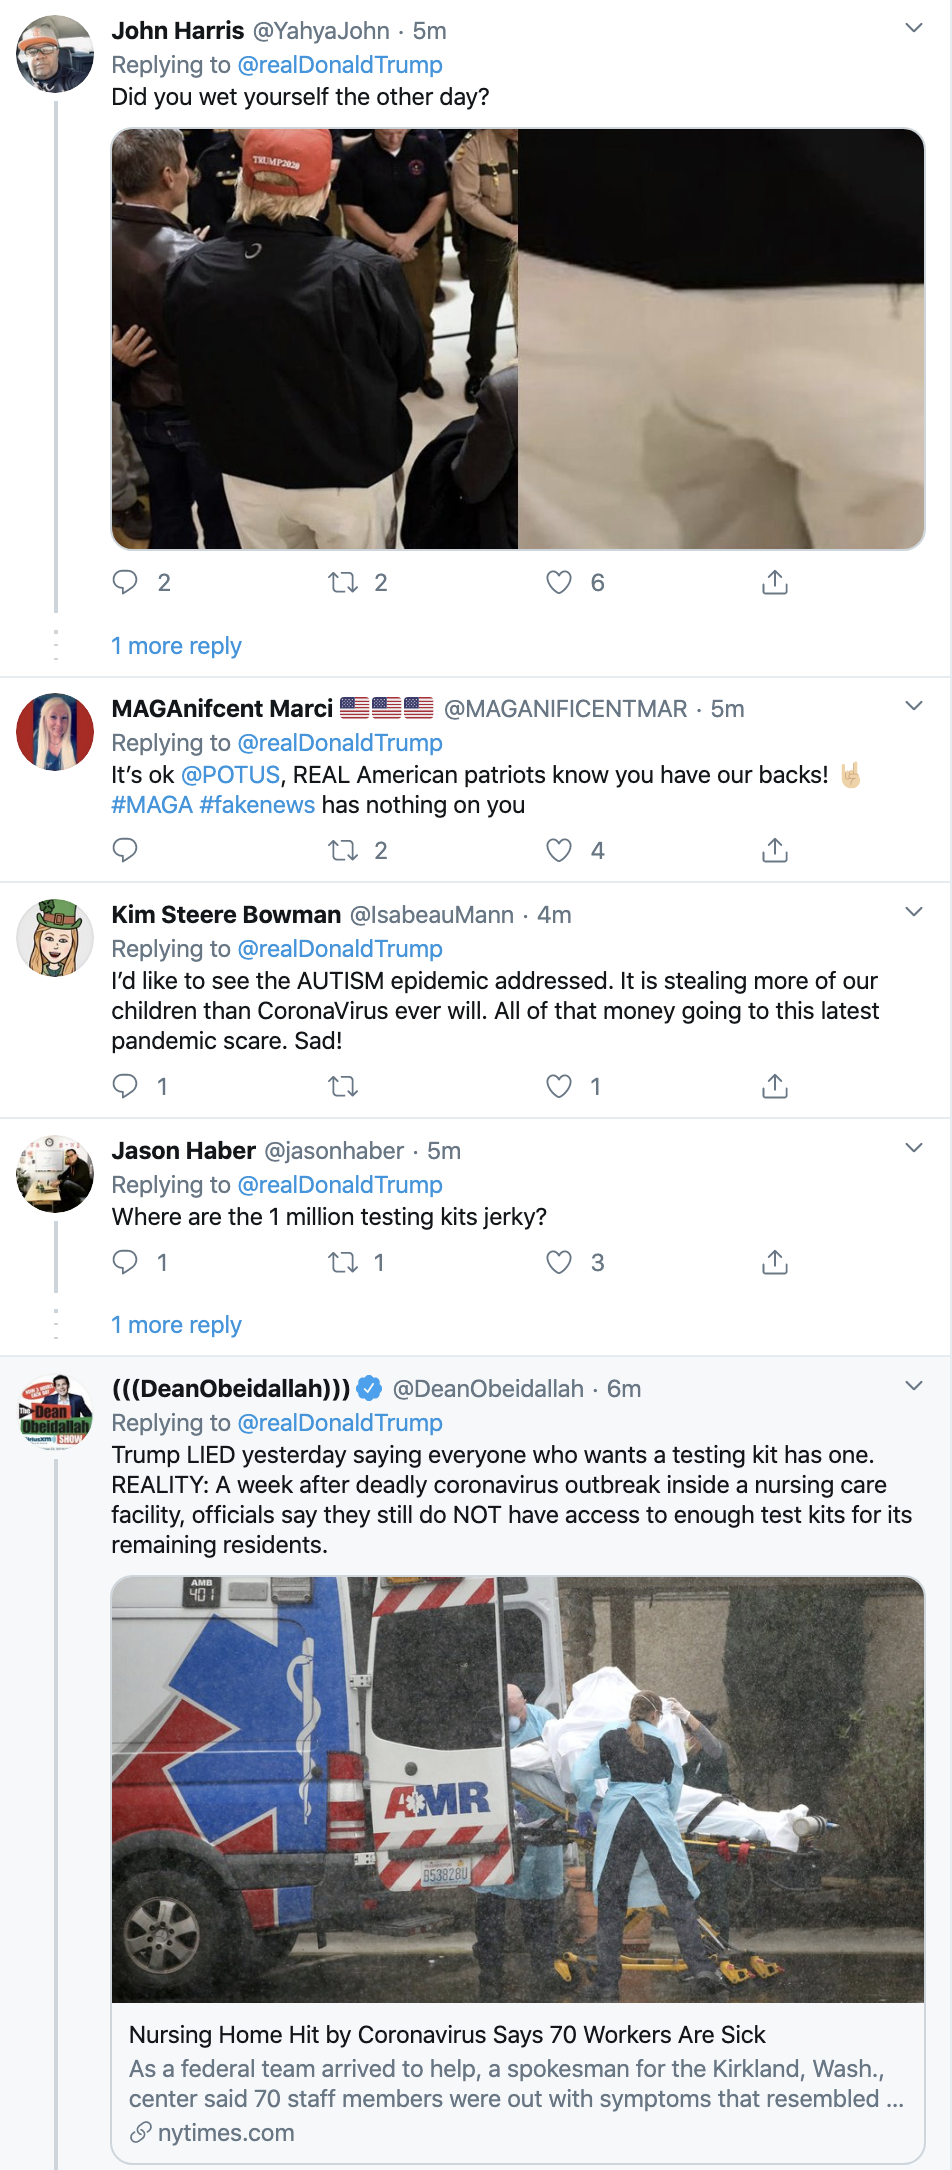 Screen-Shot-2020-03-08-at-7.52.55-AM Trump Says Media Lying About Coronavirus On Twitter Featured Healthcare National Security Politics Top Stories